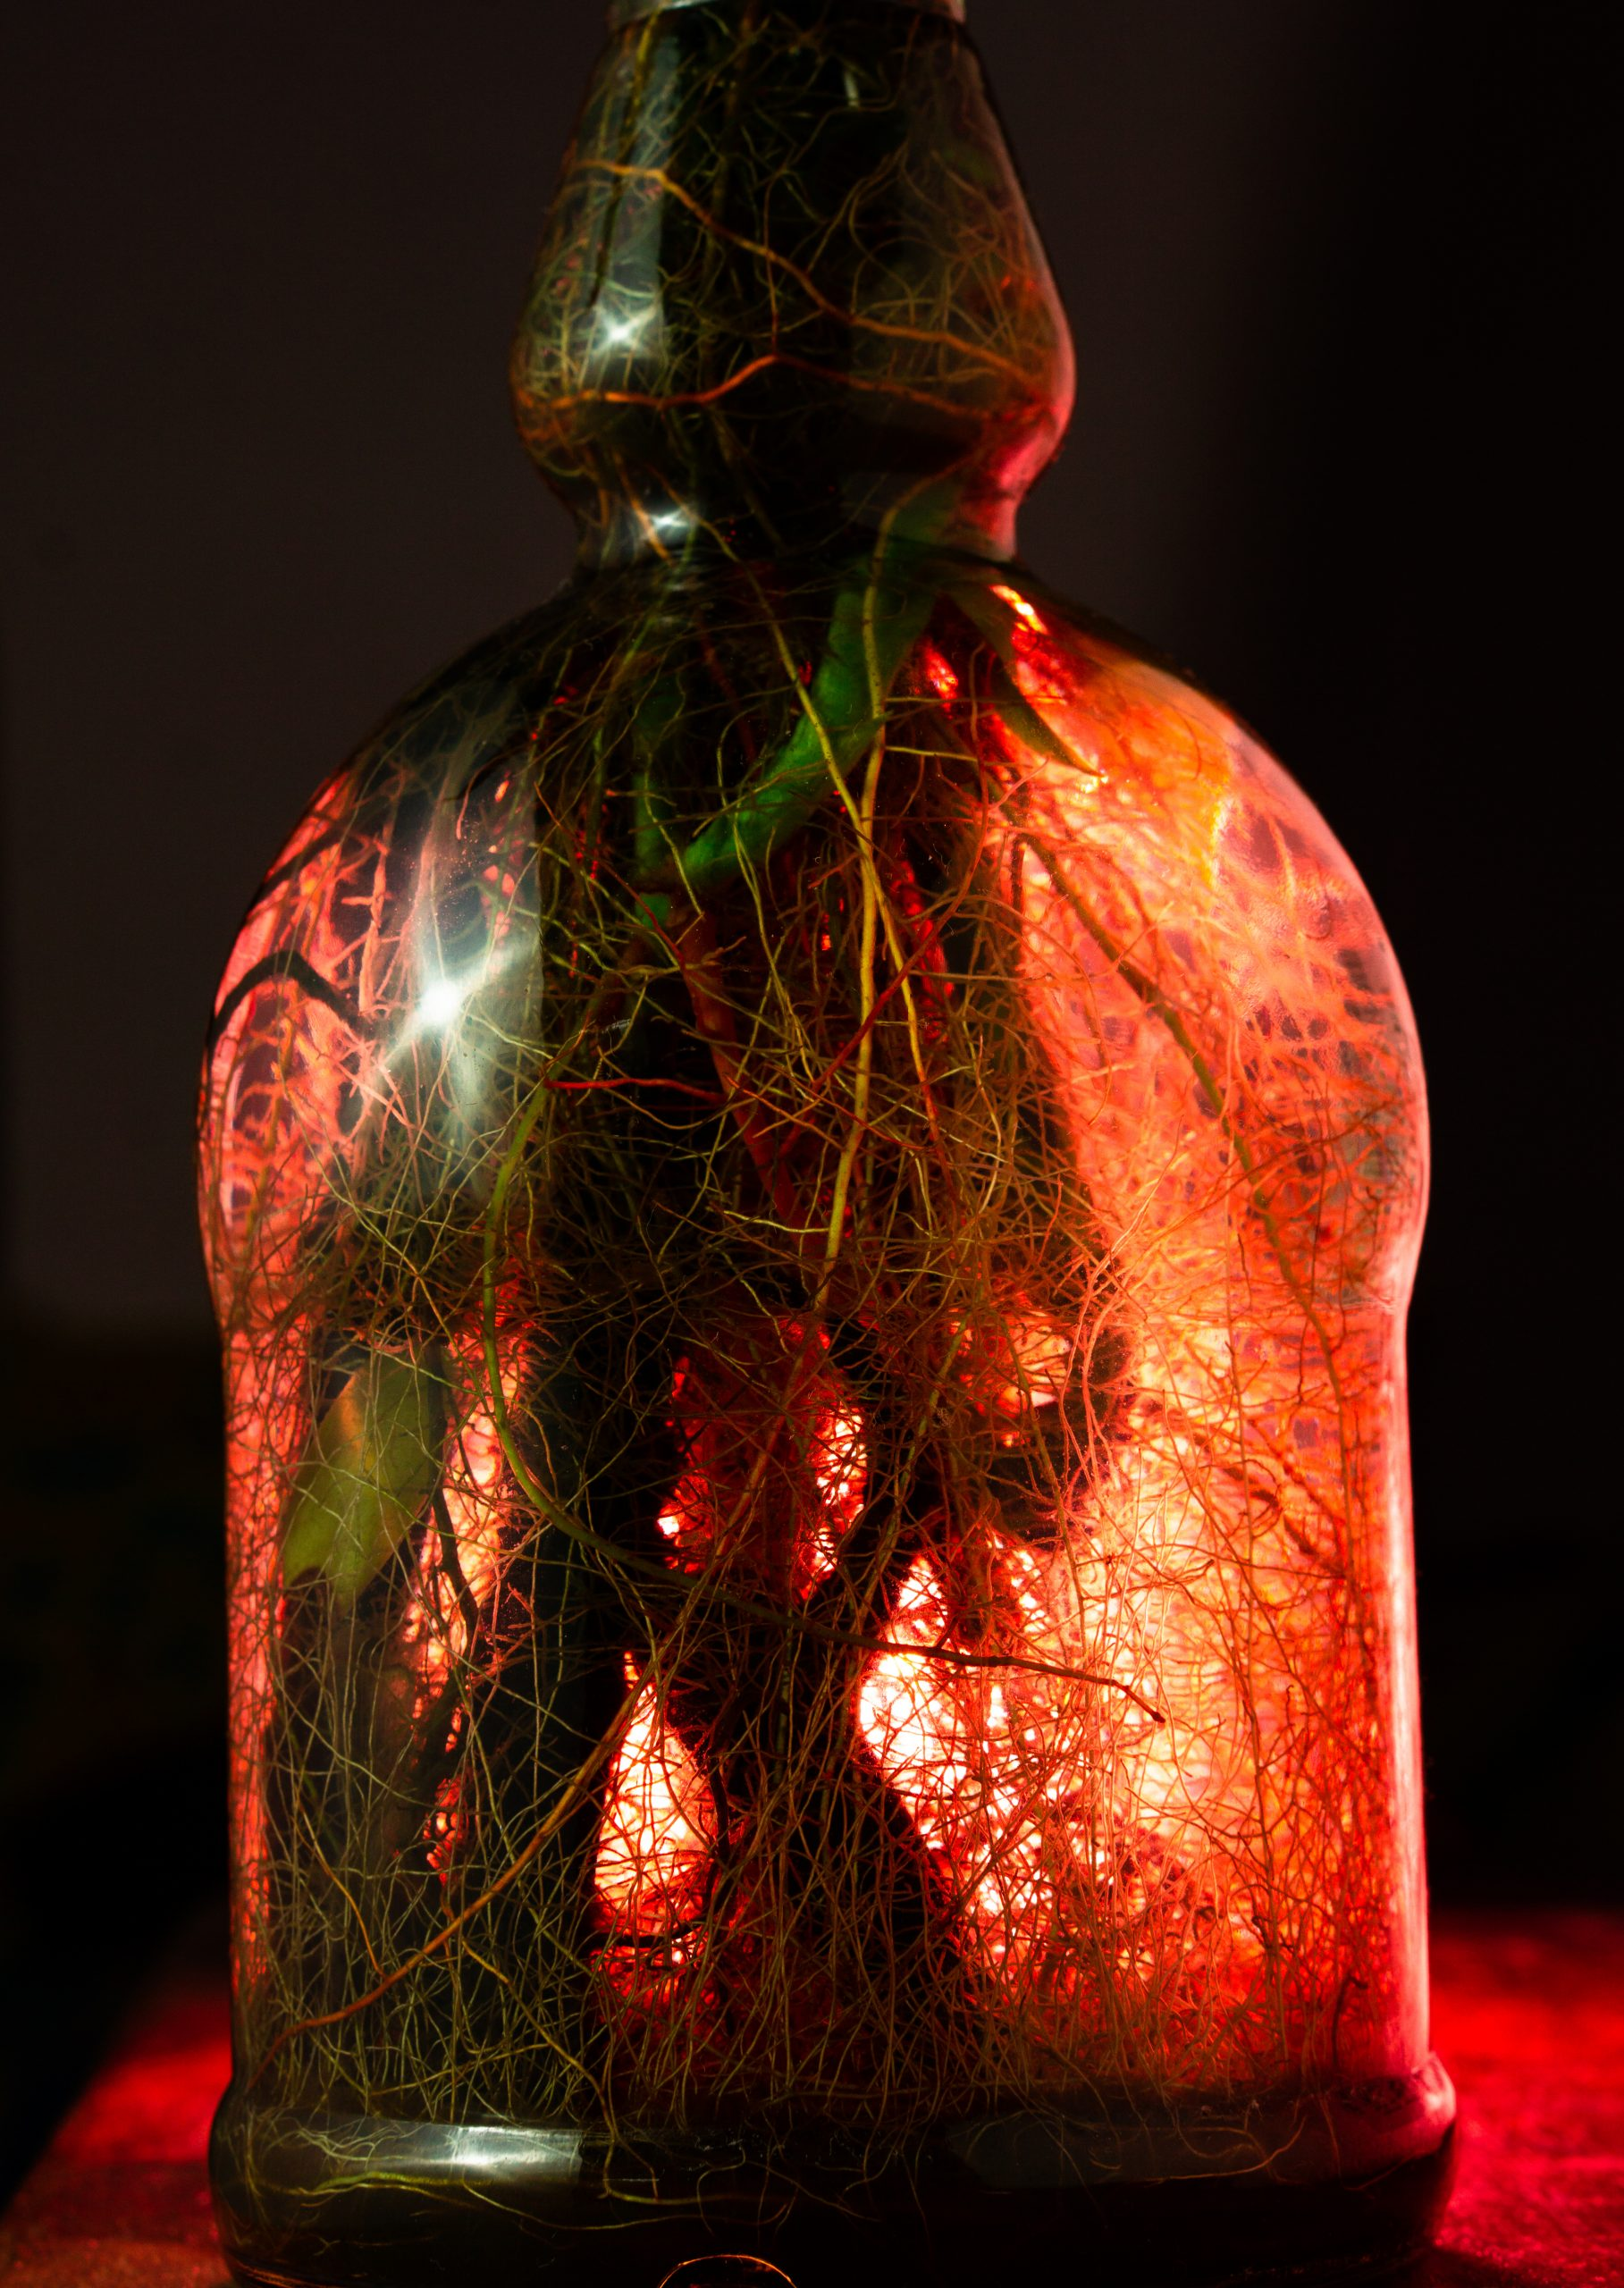 plant root in a bottle